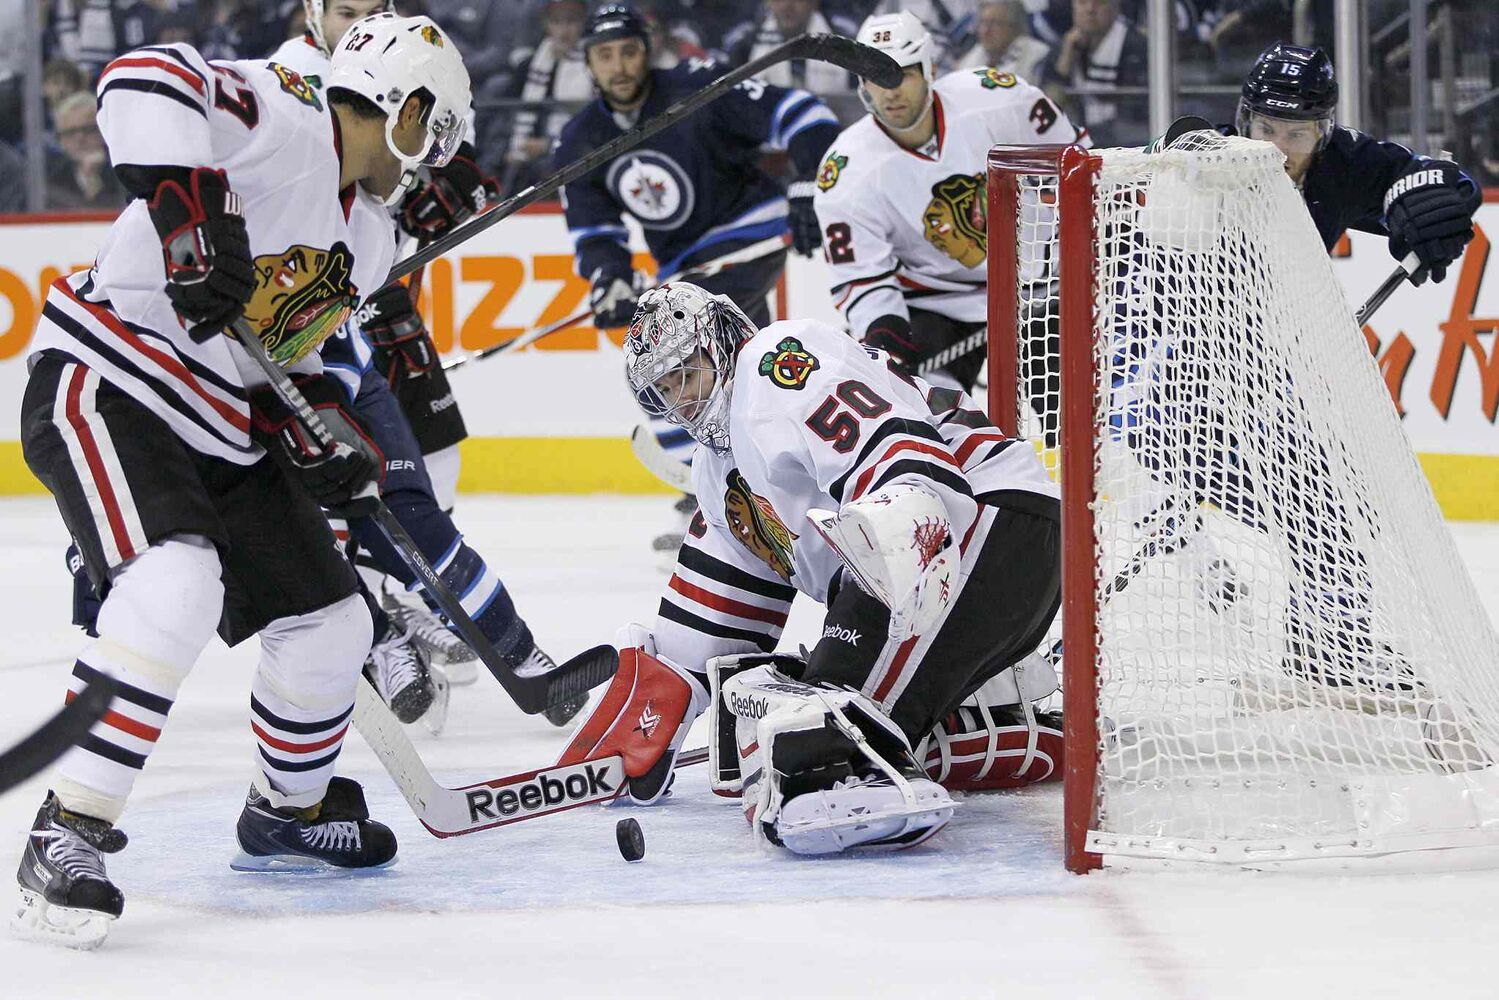 Chicago Blackhawks goaltender Corey Crawford (50) makes a save off a Matt Halishchuk shot as Johnny Oduya (left) picks up the rebound during the second period. (John Woods / The Canadian Press)